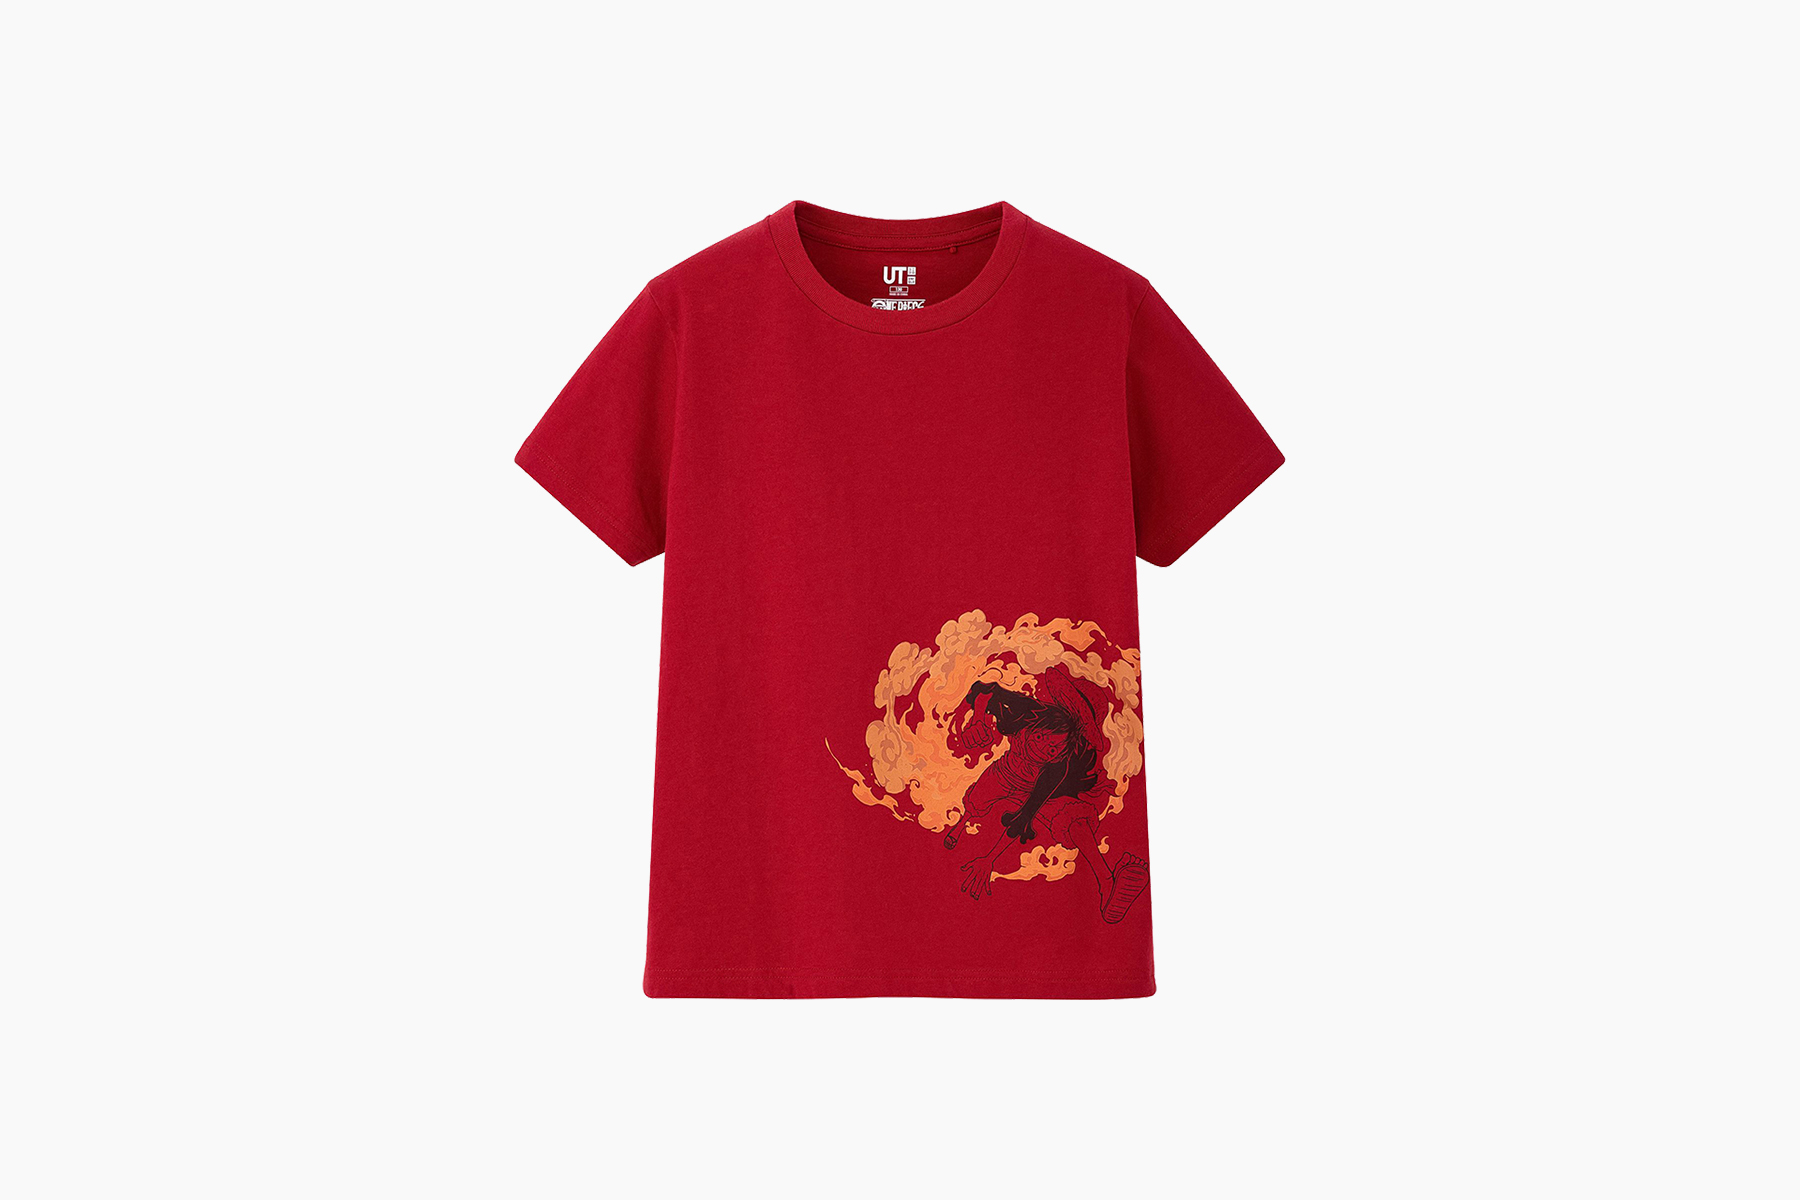 'One Piece' x Uniqlo UT 20th Anniversary Anime T-Shirt Collection